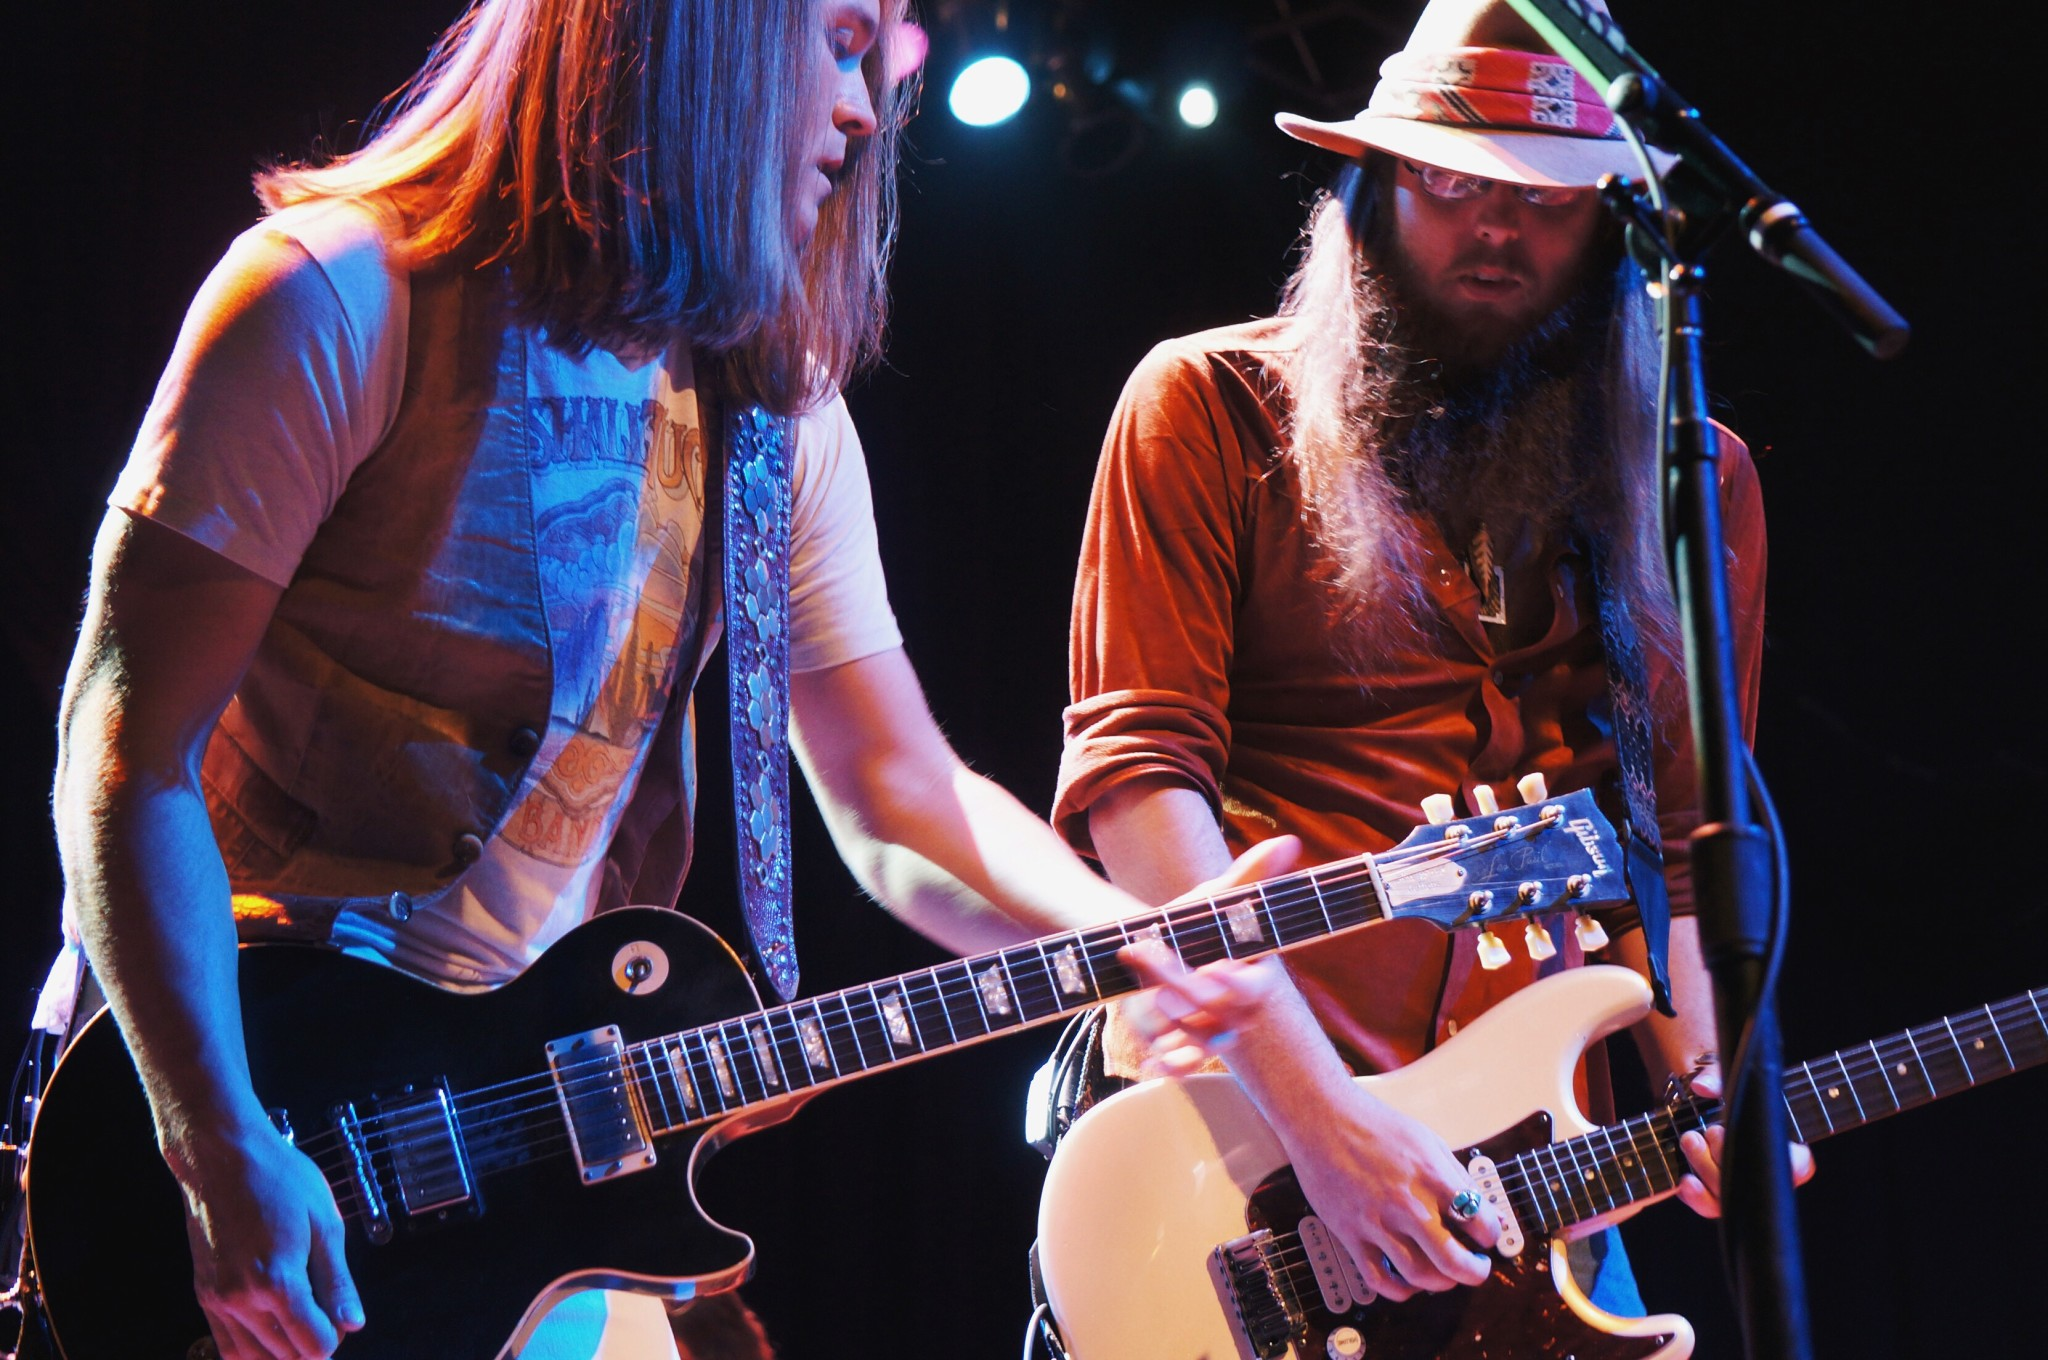 Concert Review: Whiskey Myers at House of Blues